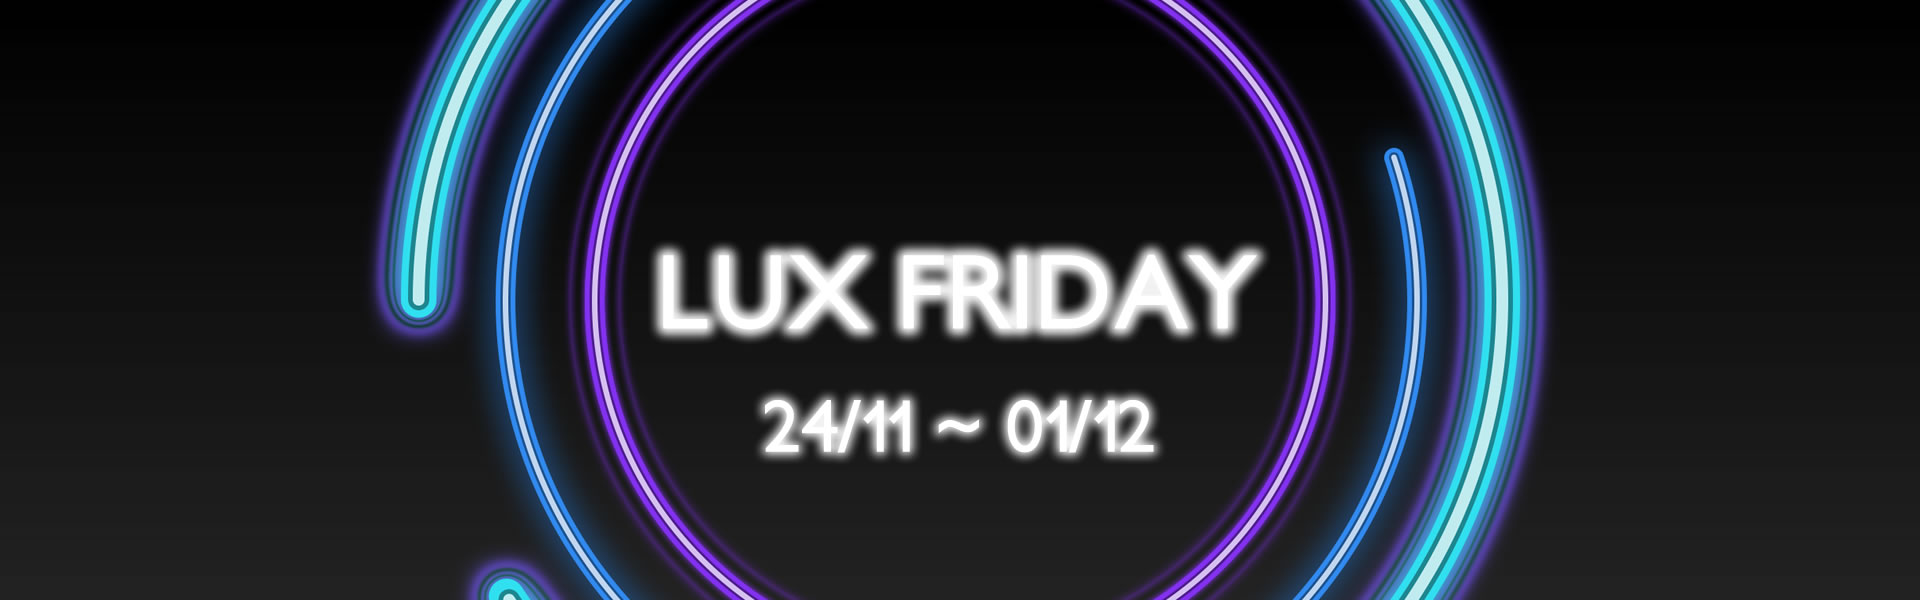 1920x600 Lux Friday